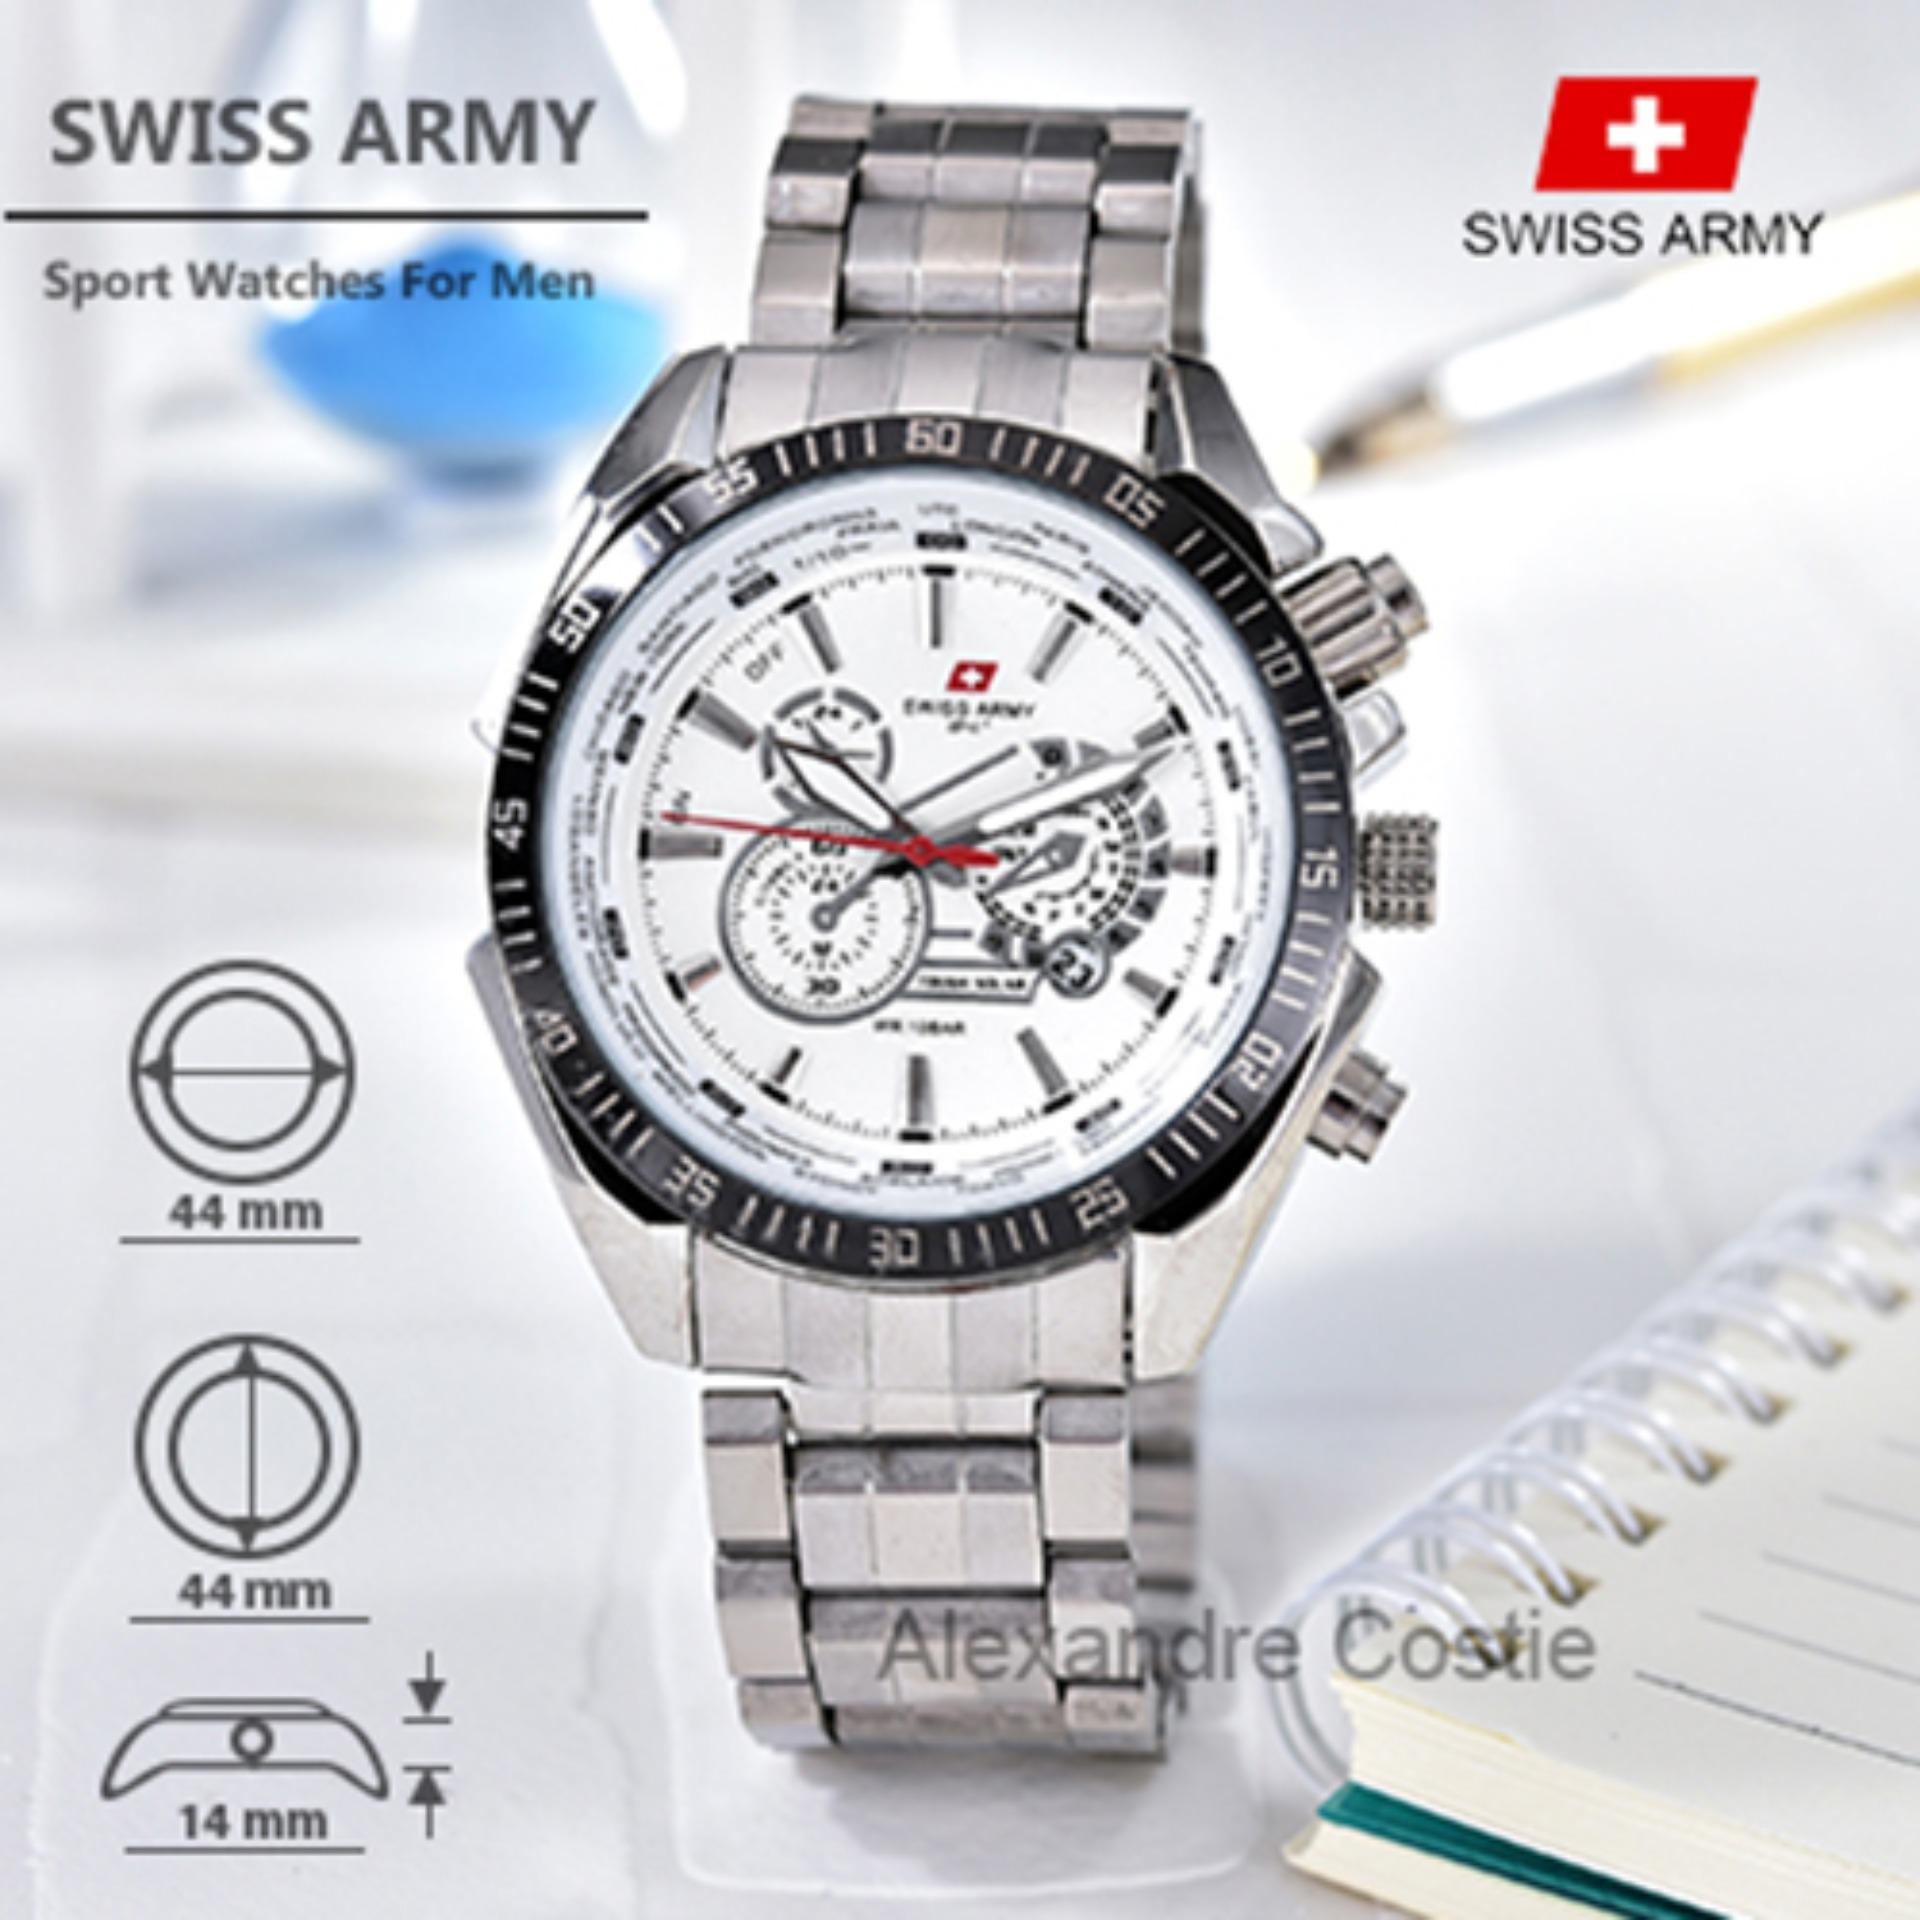 Swiss Army - Sport Watches - Jam Tangan Pria - Stainless Steel Band - SA-